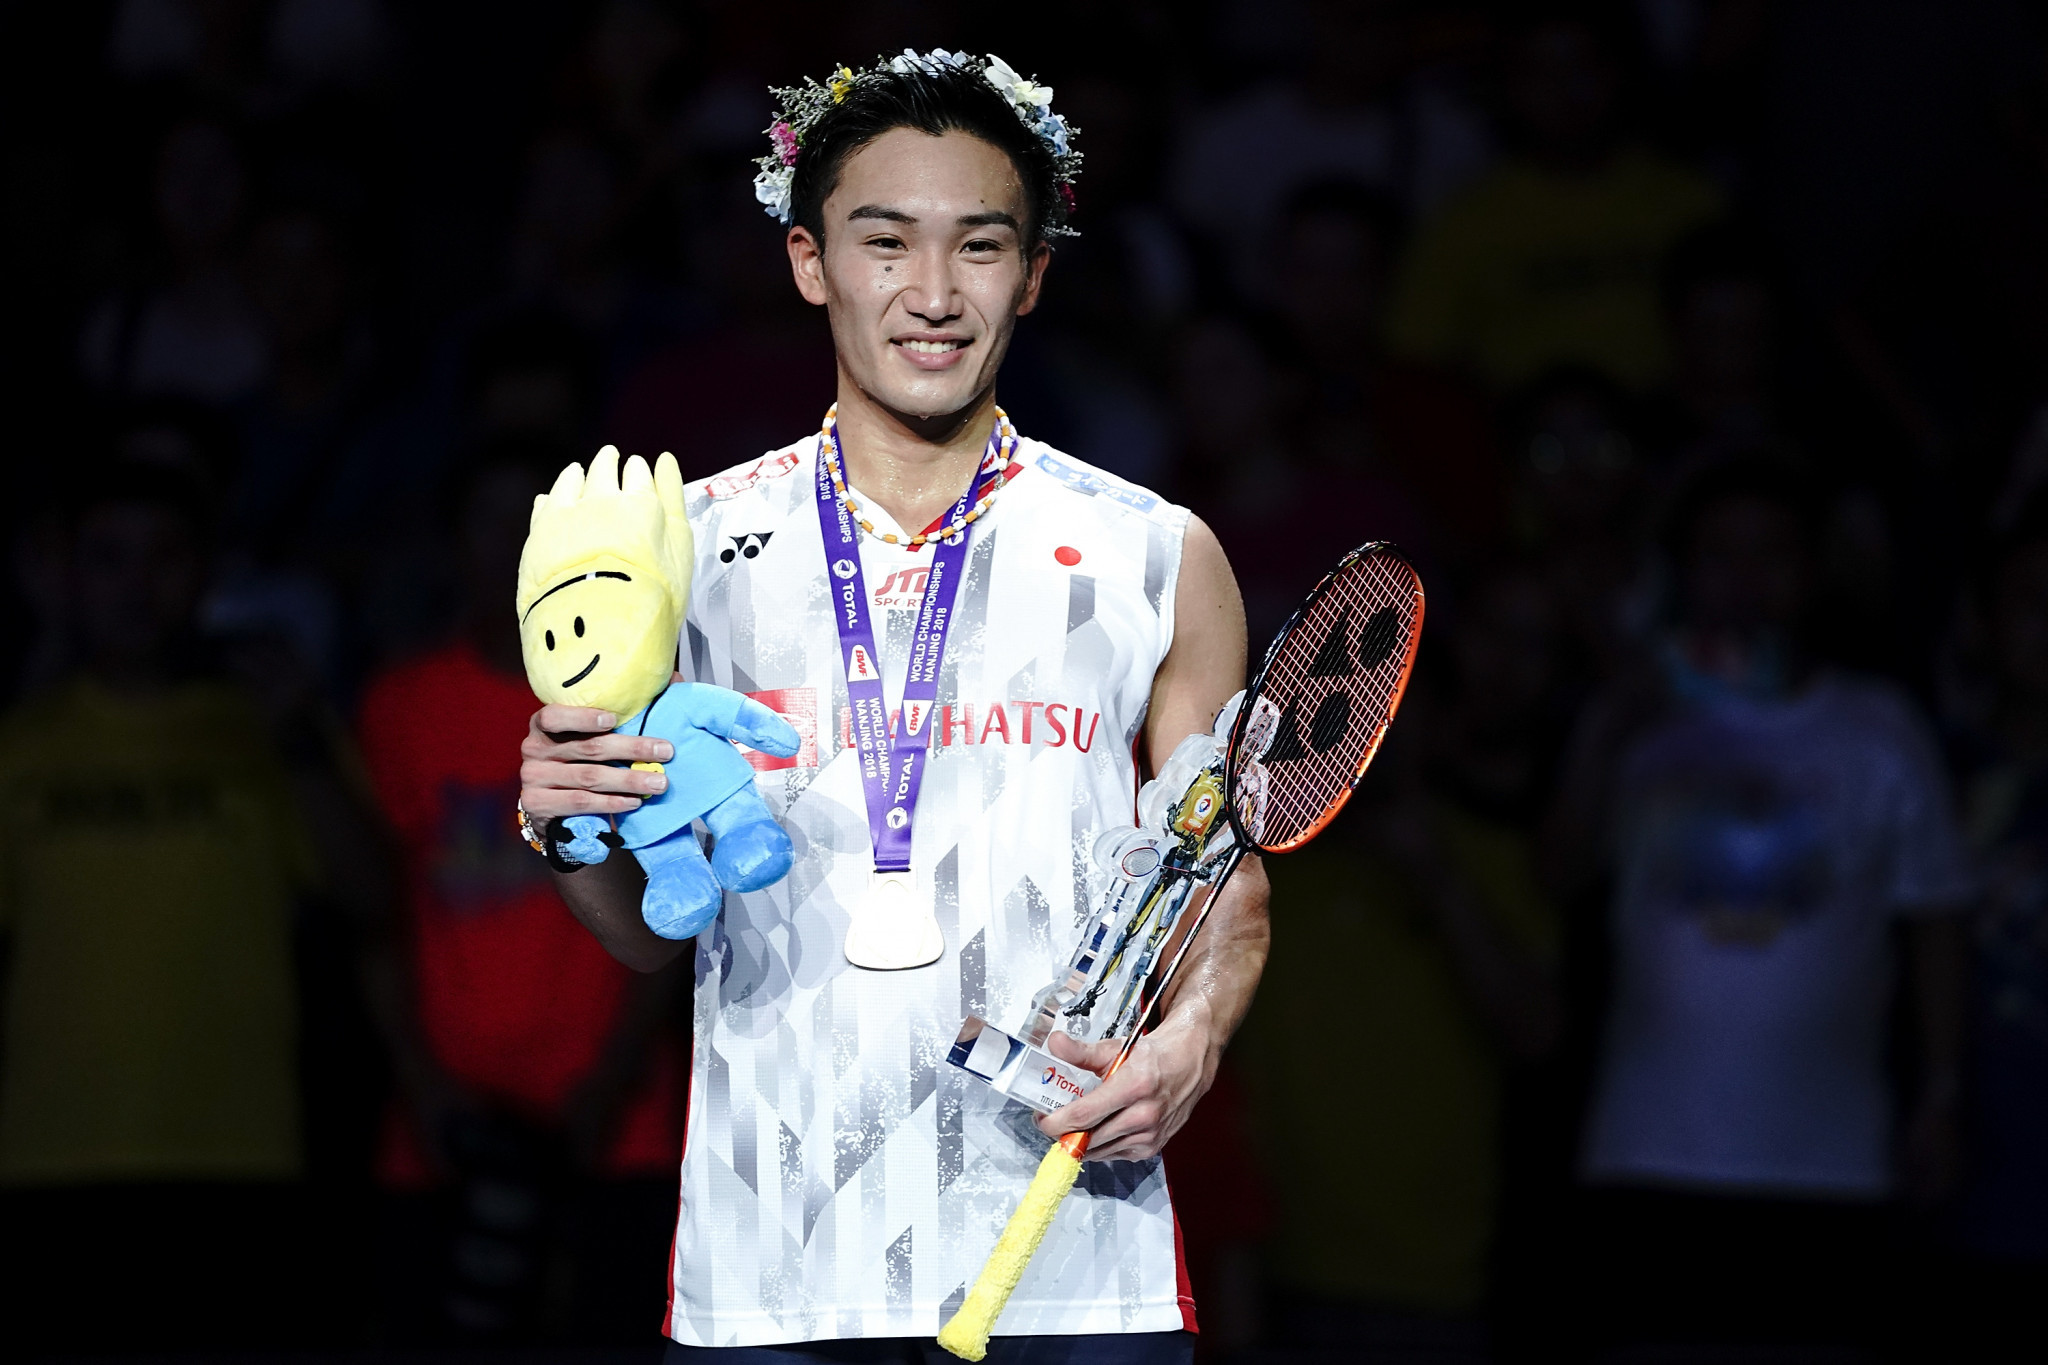 Japan's Kento Momota was crowned as men's world champion ©Getty Images